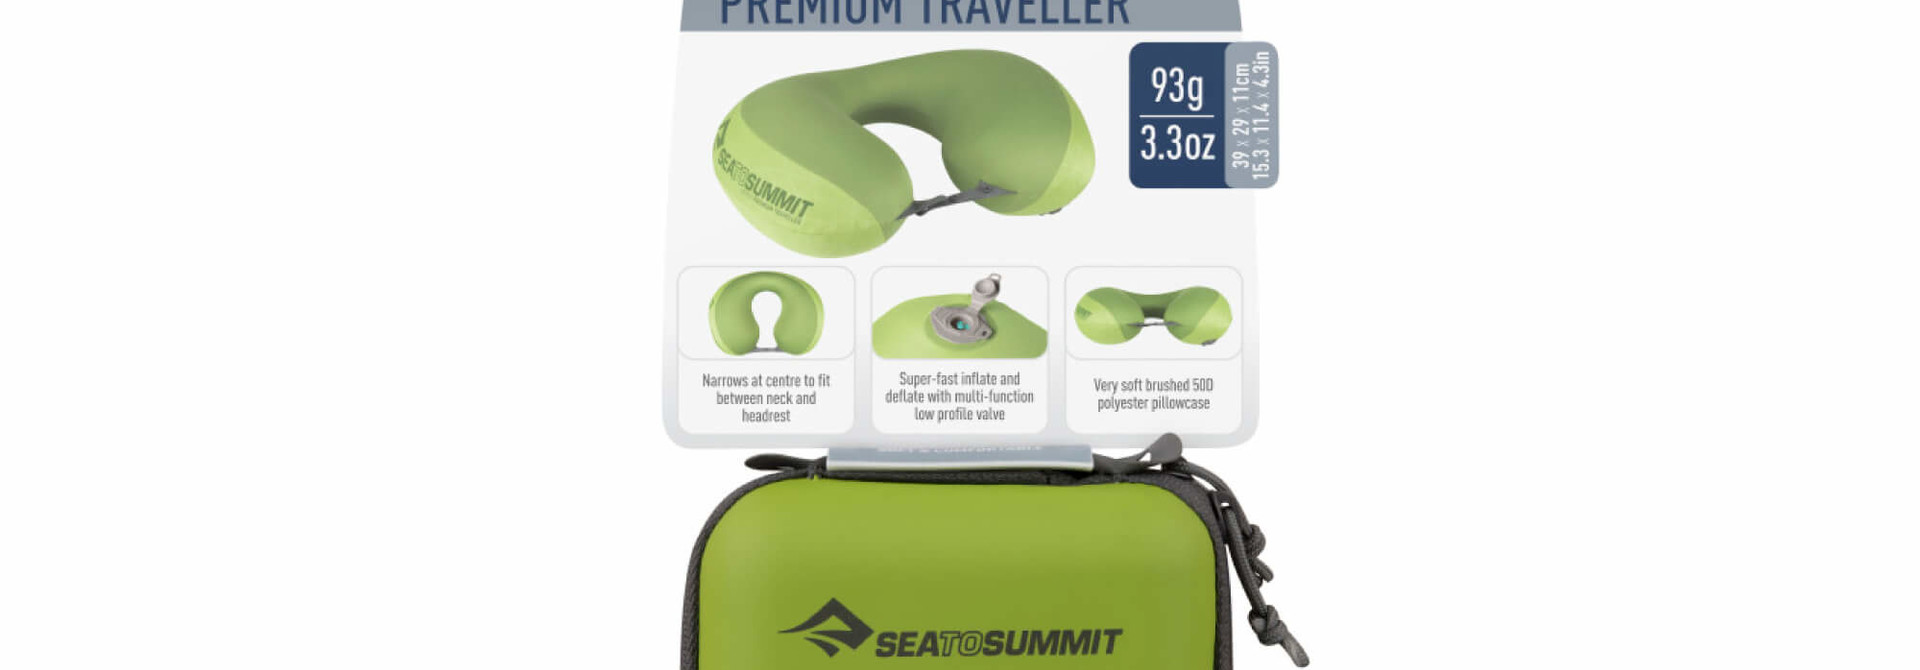 Aeros Premium Traveler Pillow